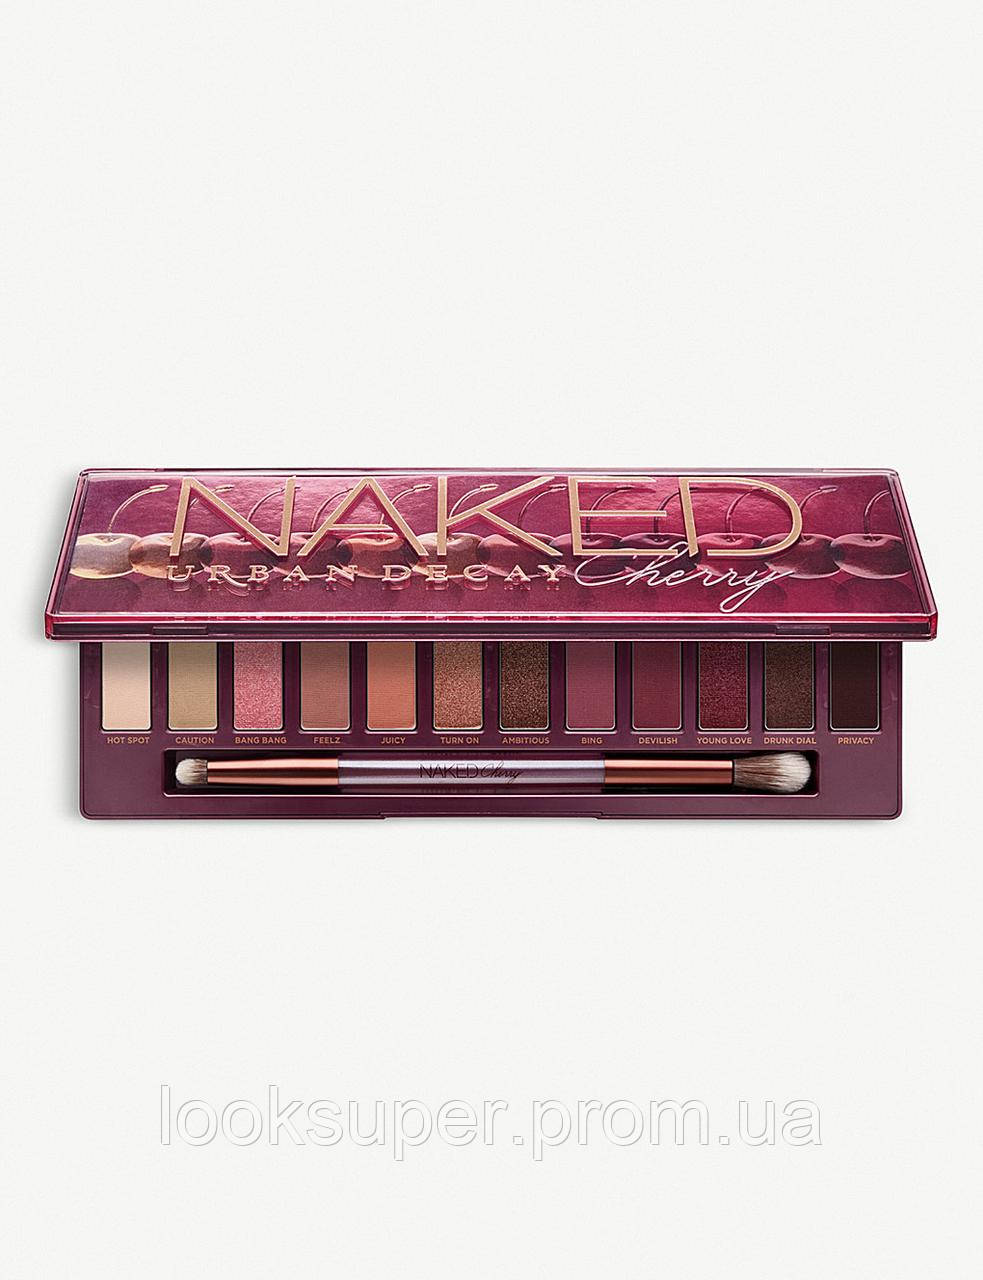 Палетка теней URBAN DECAY Naked Cherry Palette